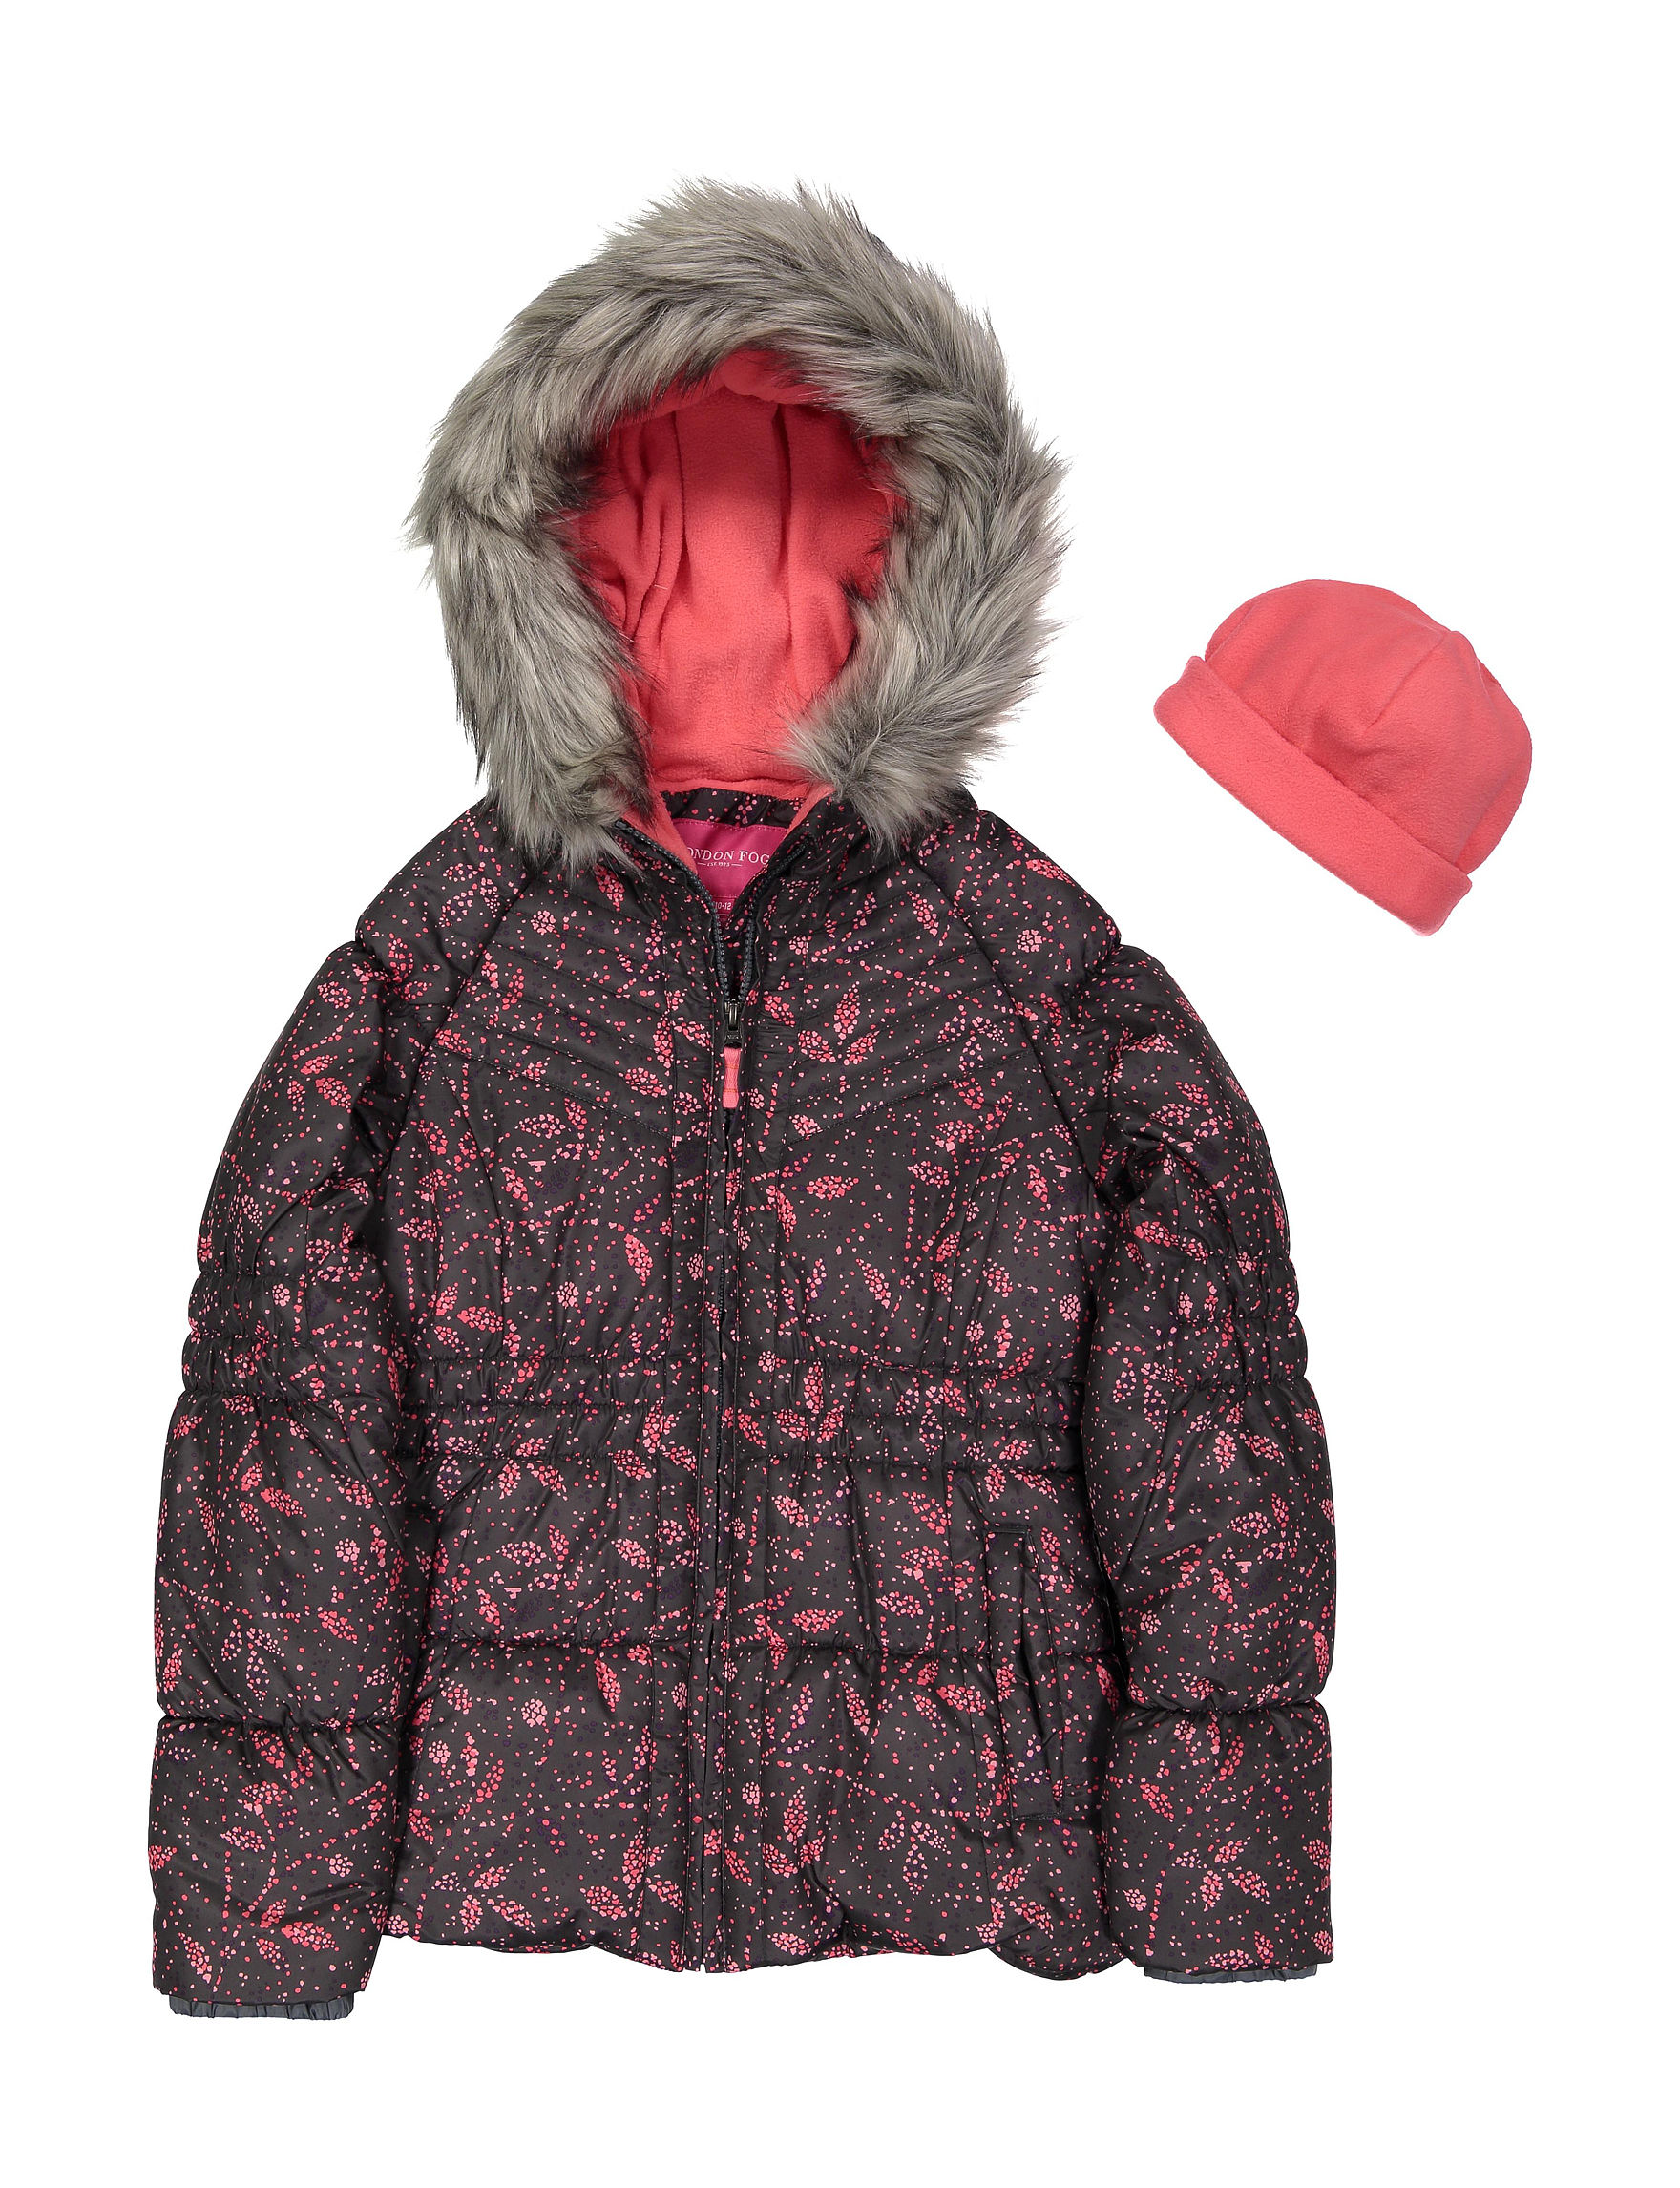 London Fog Multi Puffer & Quilted Jackets